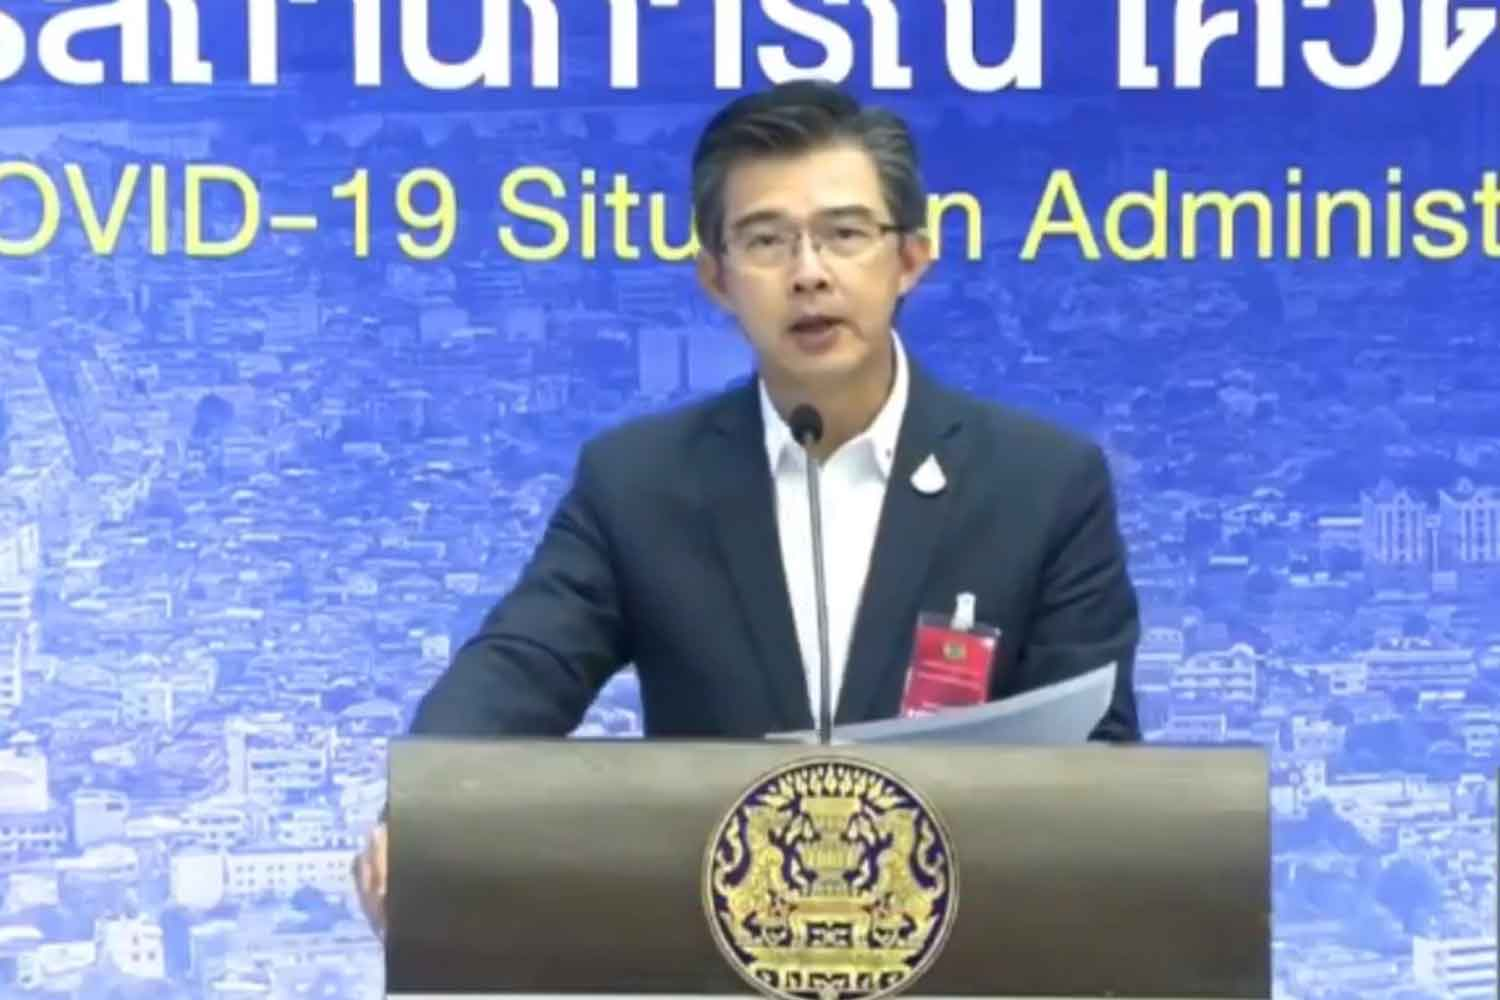 Dr Taweesilp Visanuyothin, spokesman for the Centre for Covid-19 Situation Administration, announces nationwide tiered gathering bans at Government House in Bangkok on Wednesday. (Screenshot from Covid-19 Information Centre Facebook page)